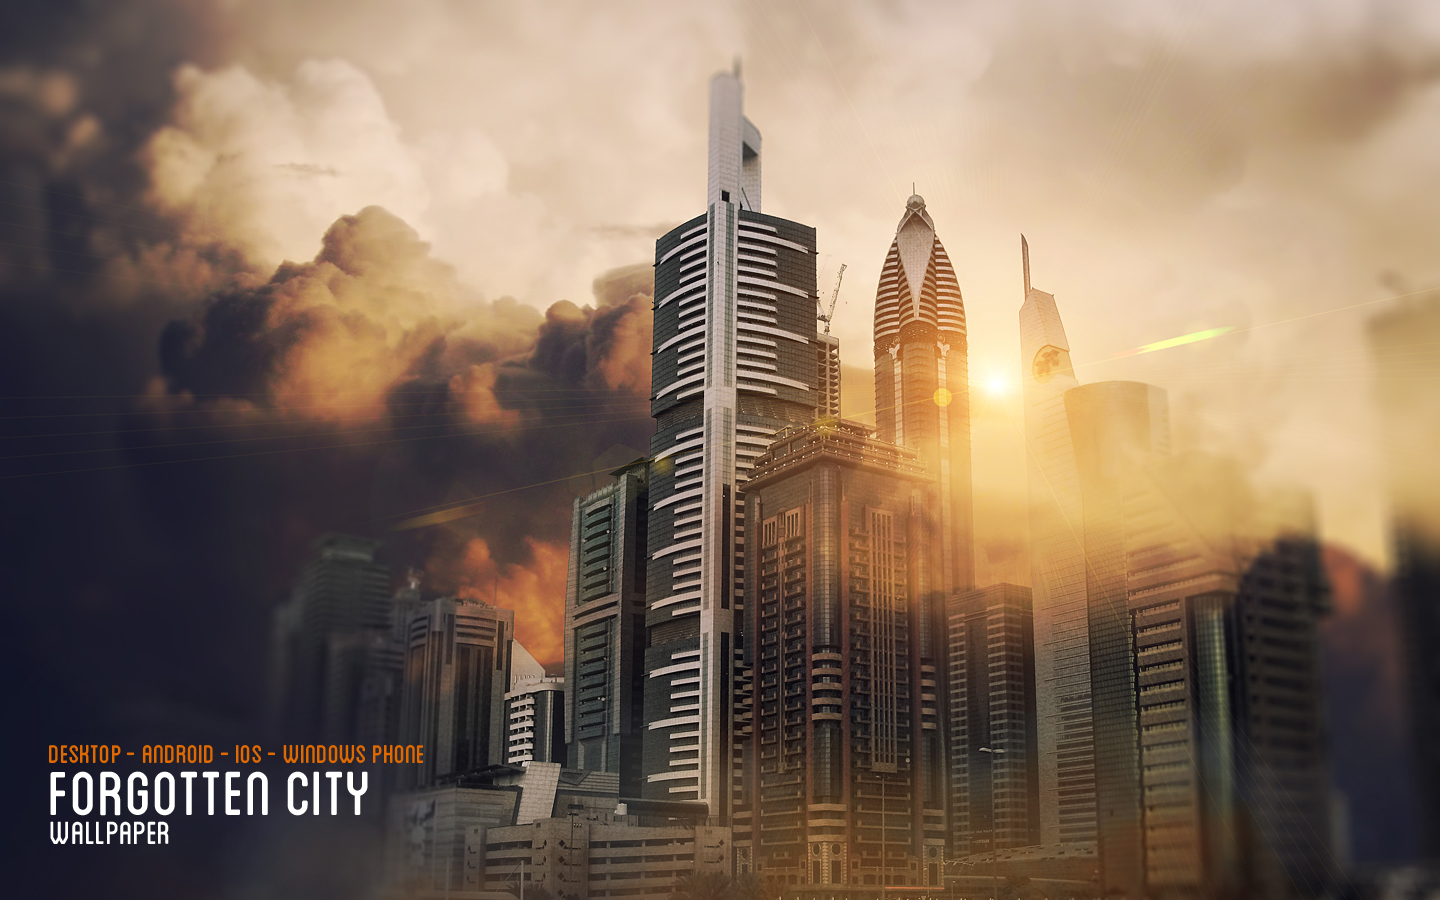 Cool Wallpapers For Iphone 7 Forgotten City Wallpaper By Martz90 On Deviantart